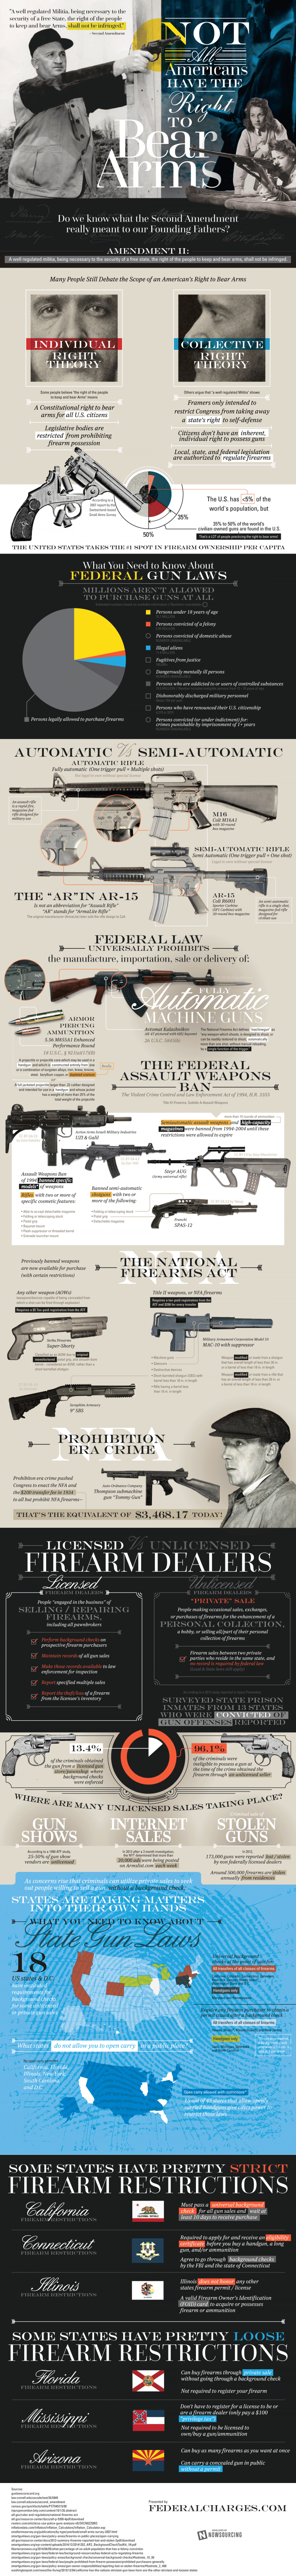 Do All Americans Have The Right To Keep And Bear Arms? Infographic